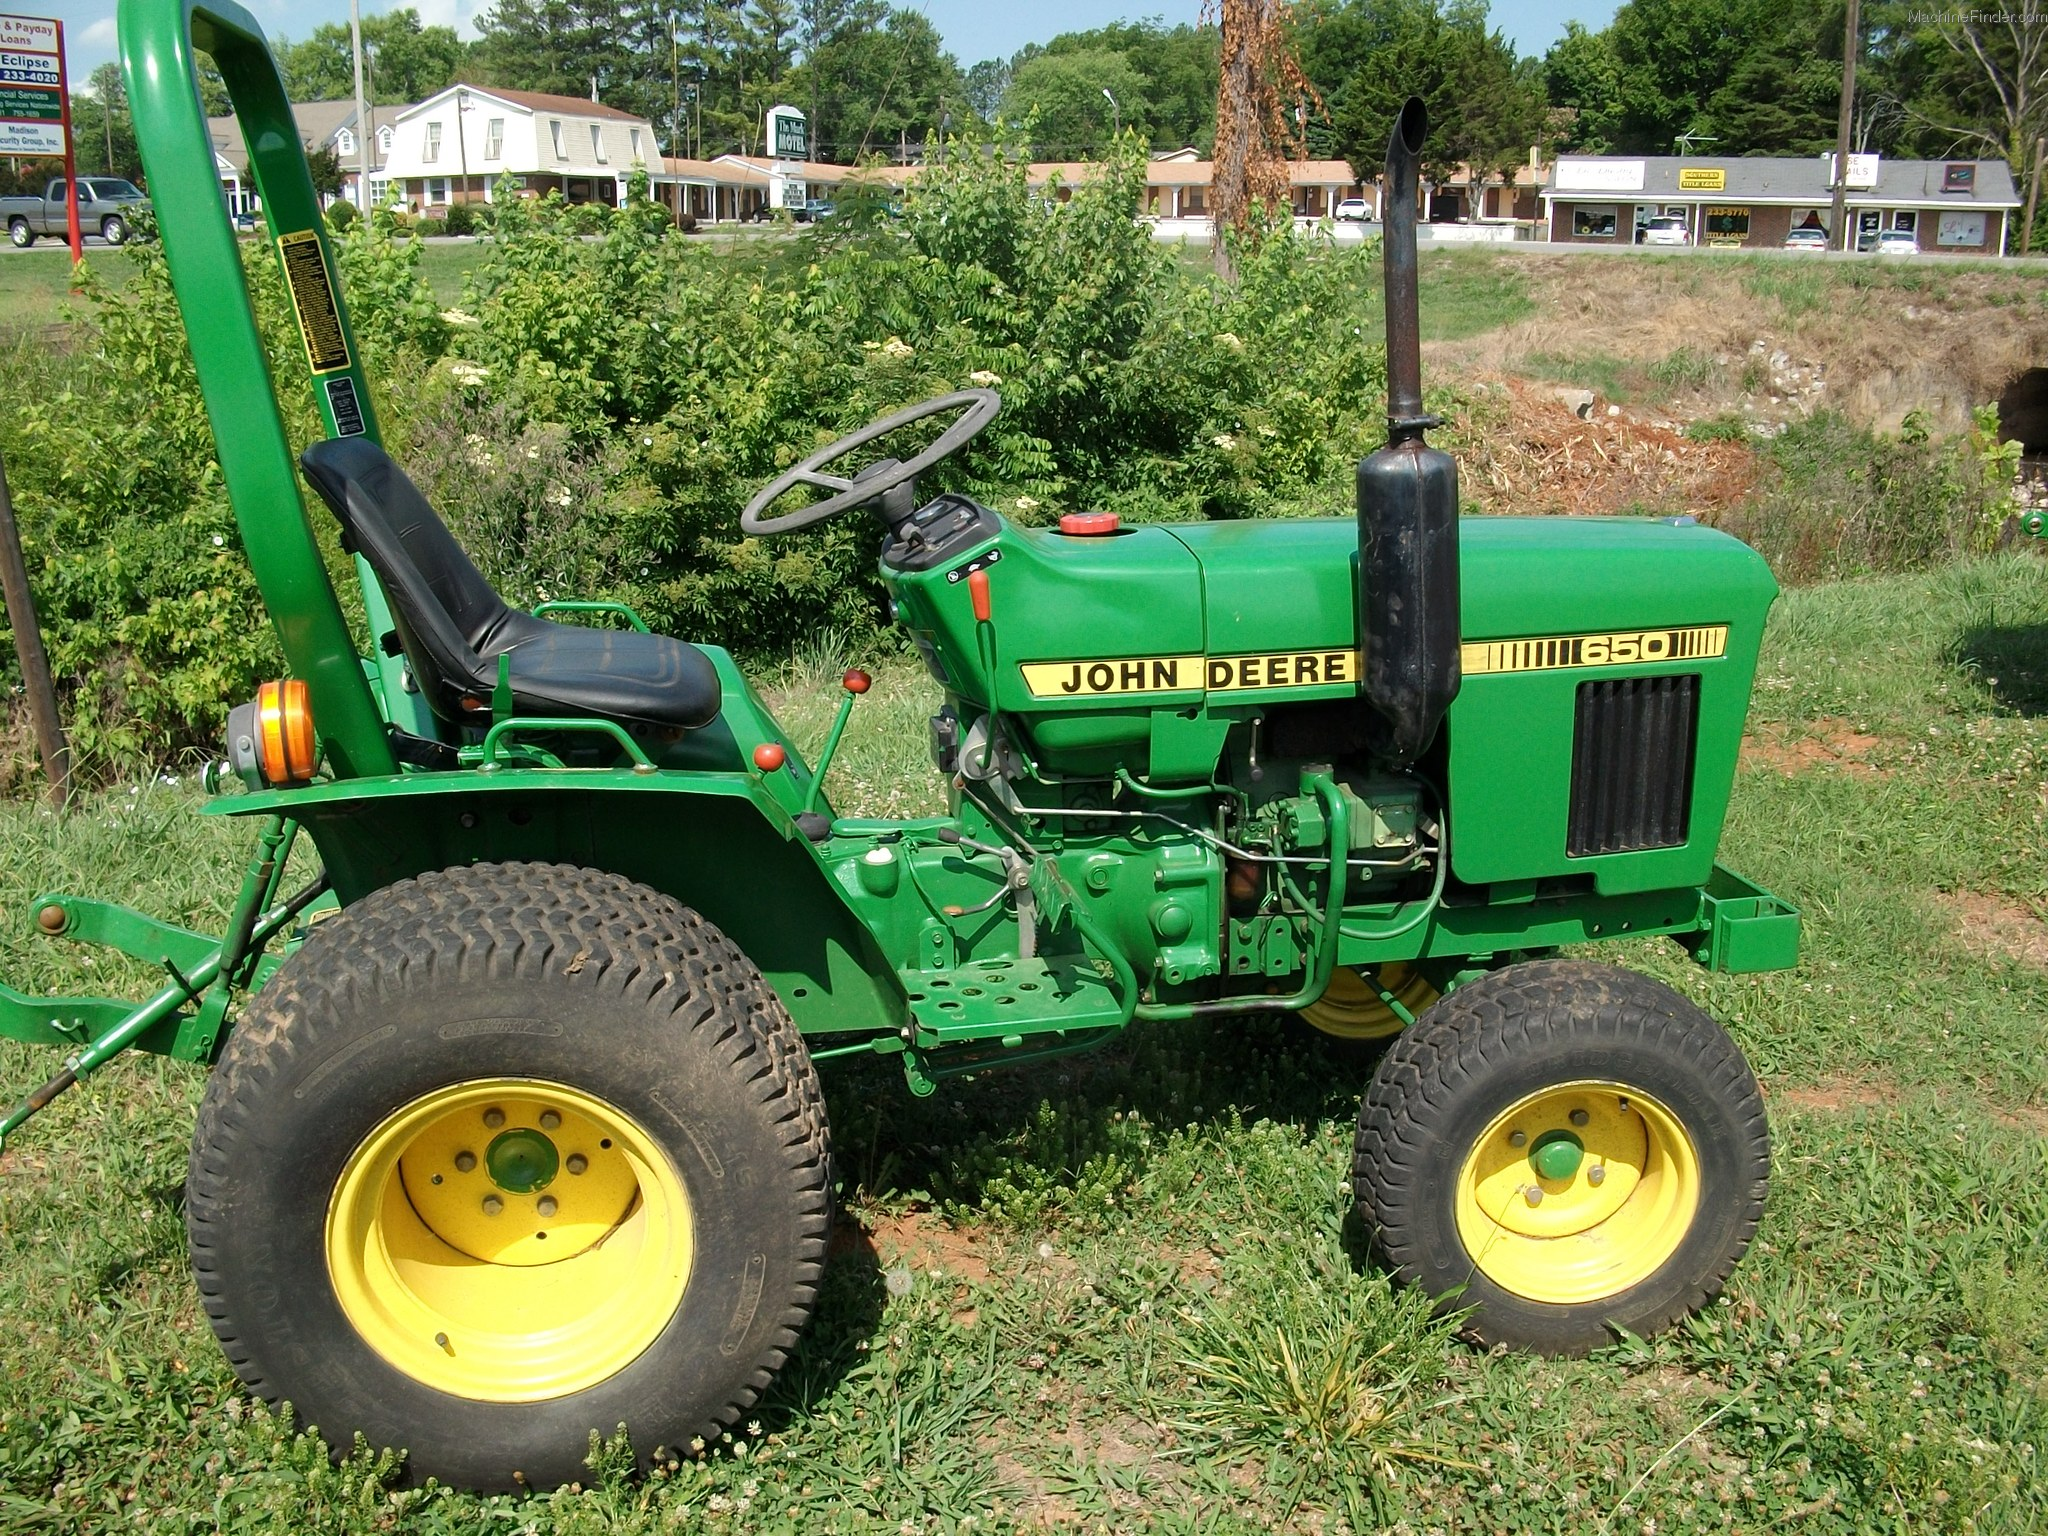 John Deere 650 Tractor Parts : John deere tractor parts related keywords